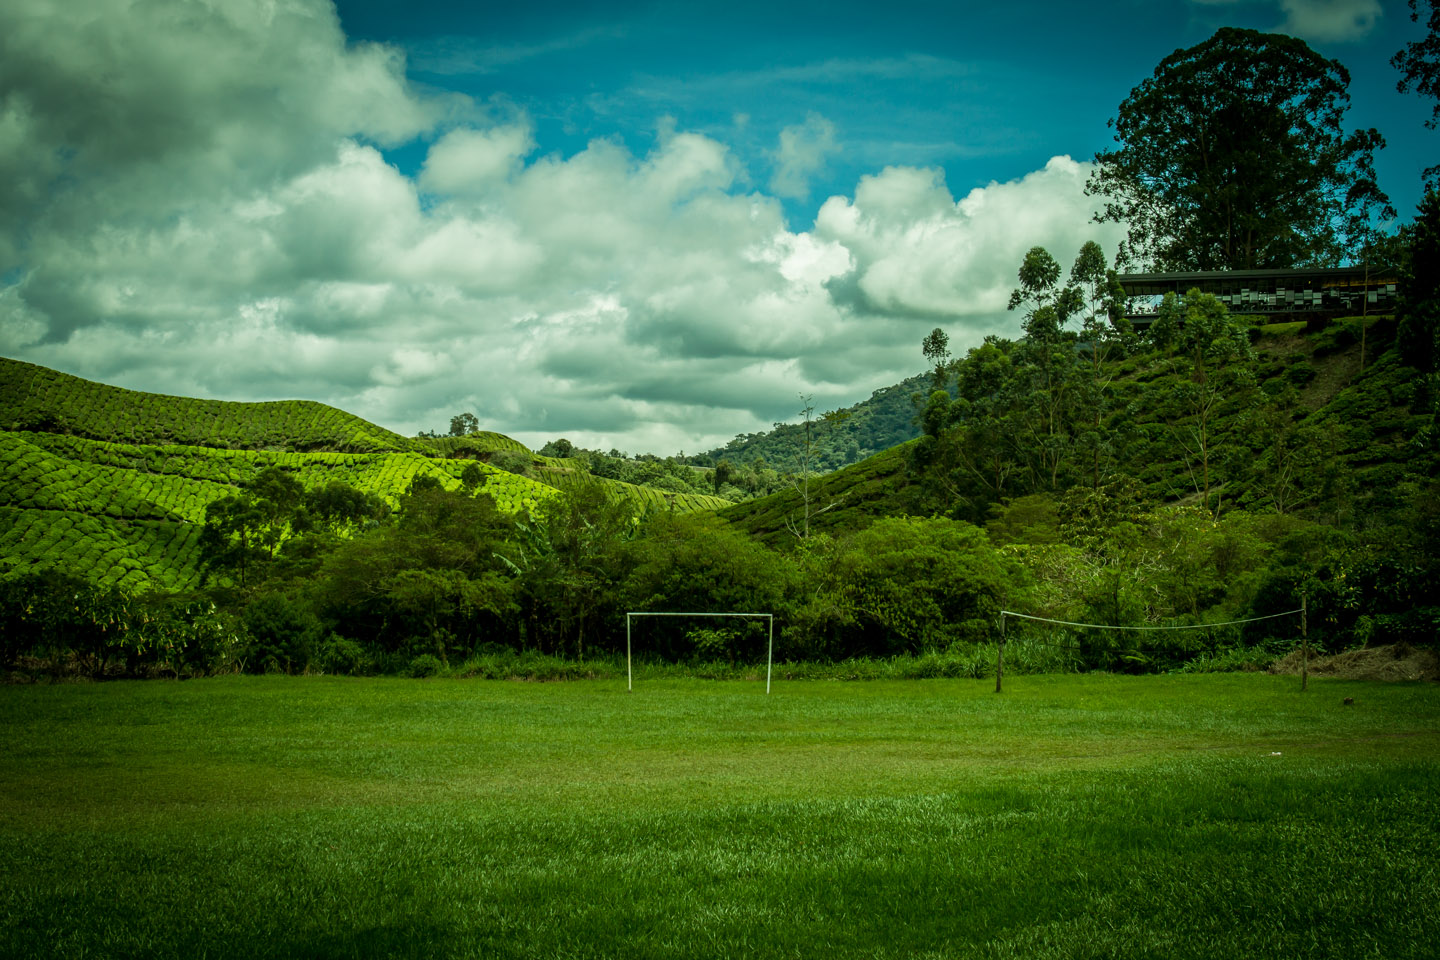 Football soccer field at Cameron Highlands Malaysia